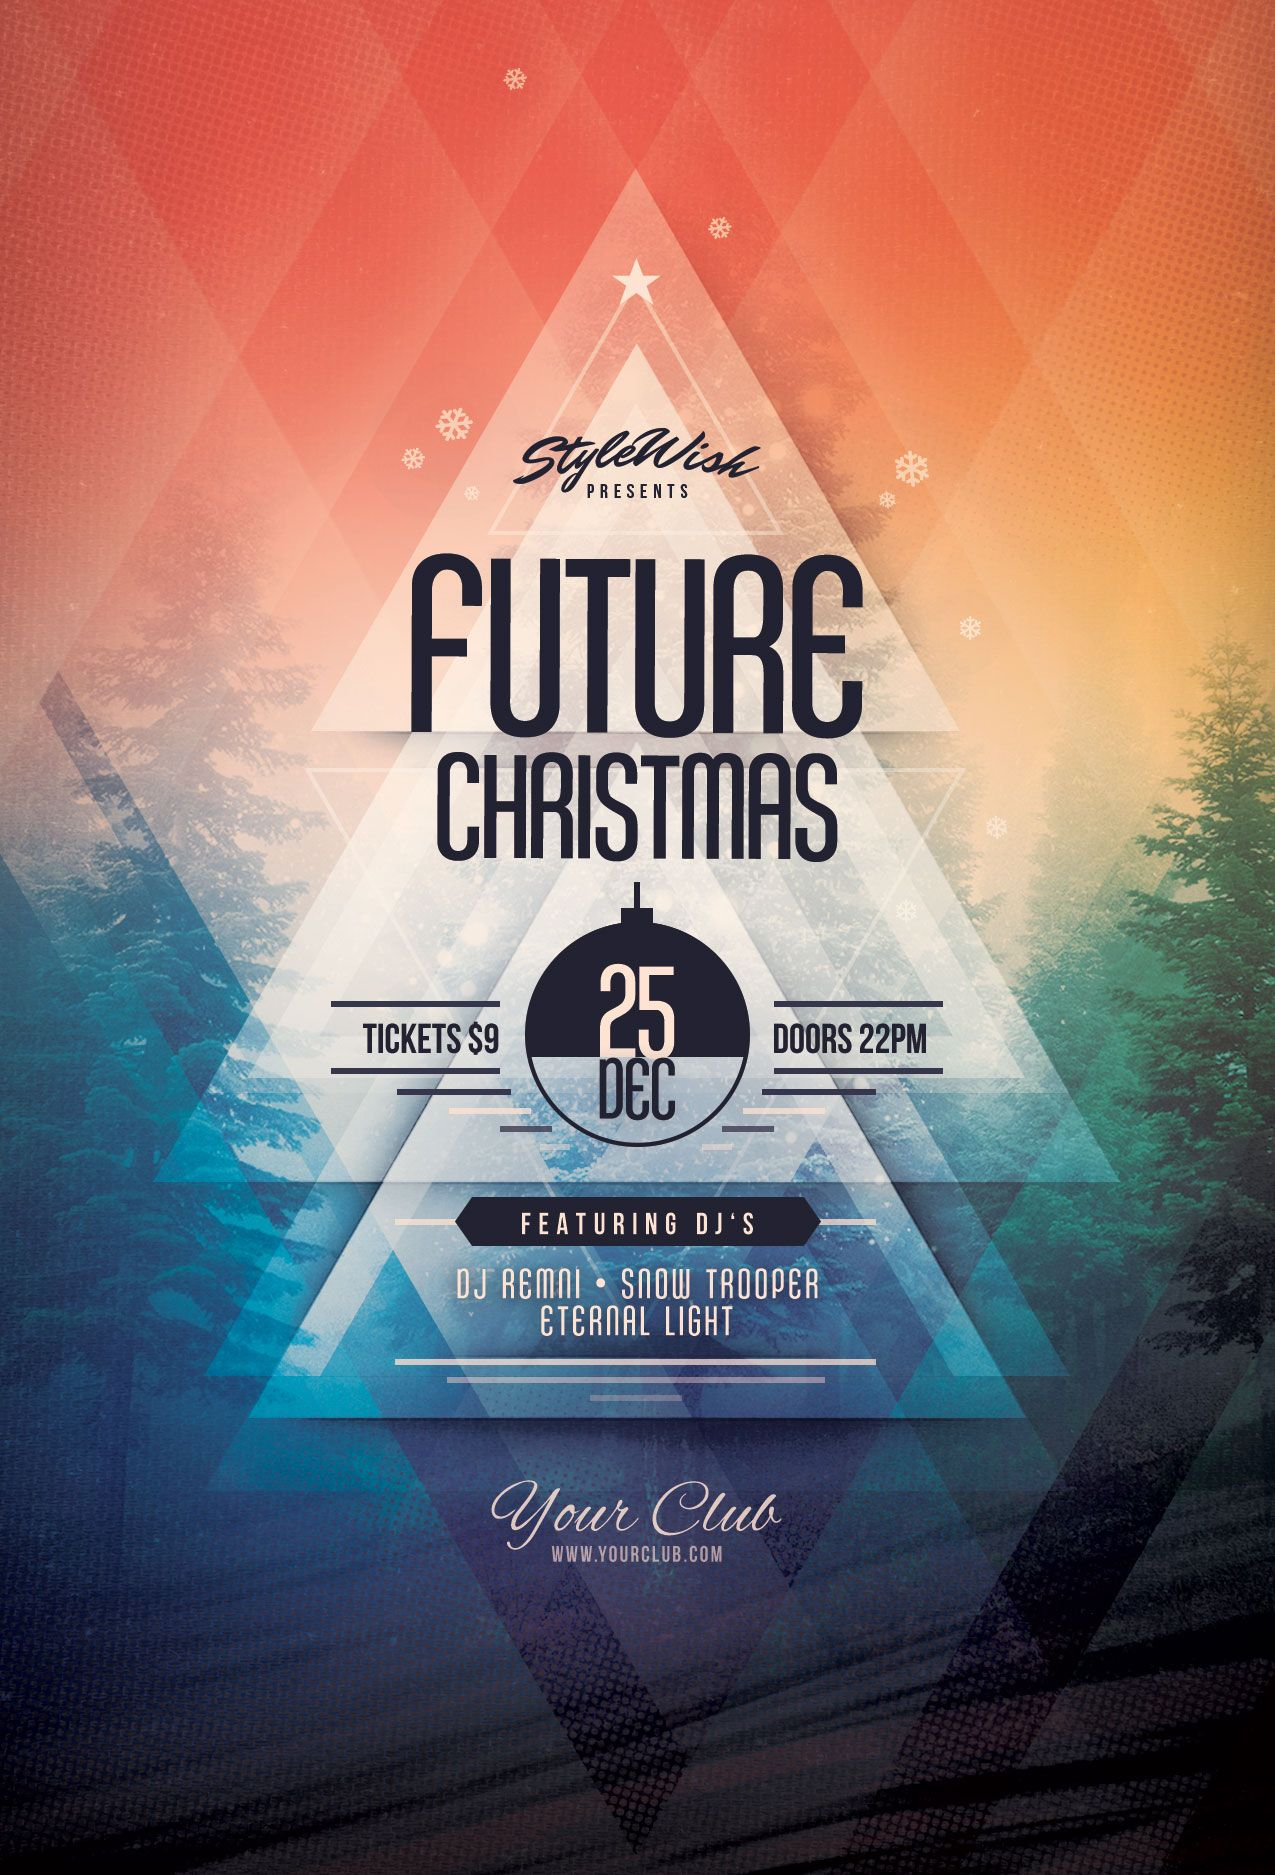 Future Christmas Flyer Template. Buy PSD file - $9 | Party poster ...